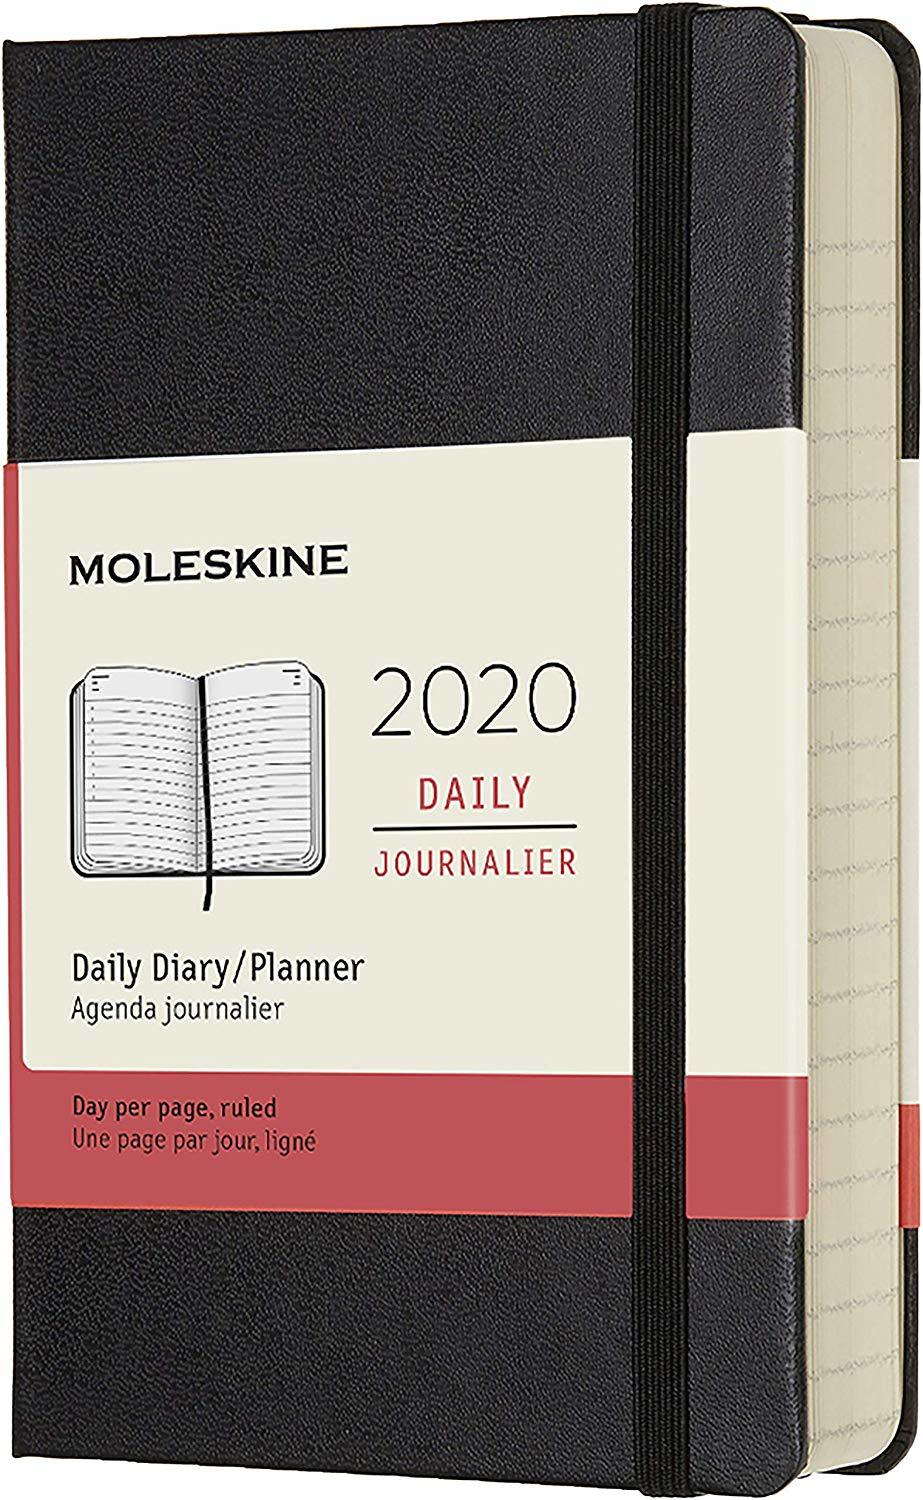 Moleskine: 2020 Diary Pocket Hard Cover 12 Month Daily - Black image